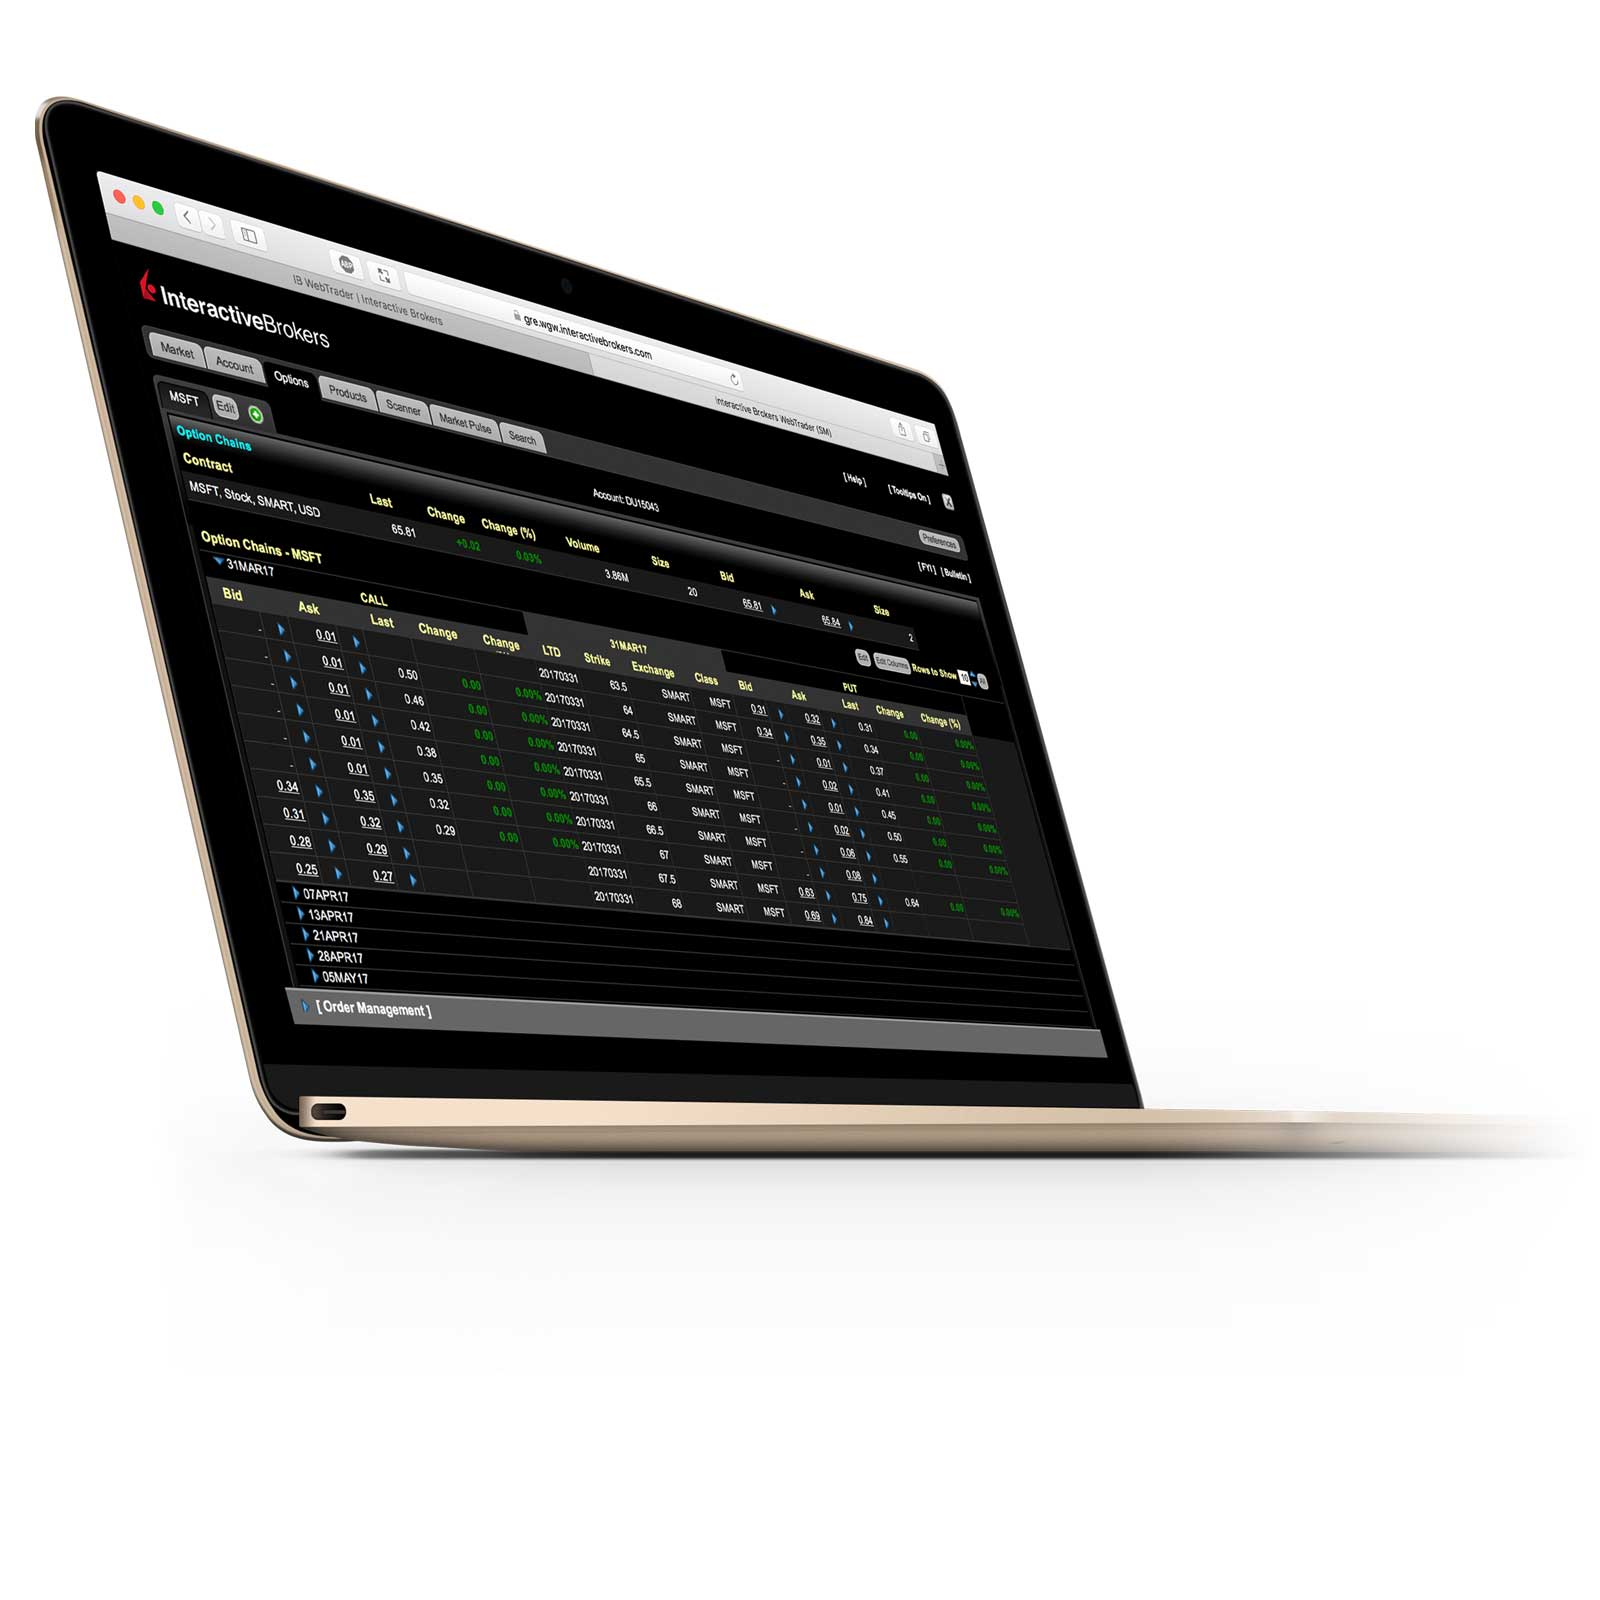 CapTrader ist ein Introducing Broker von Interactive Brokers. Interactive Brokers ®, IBSM, suomenpaineautot.info ®, IB Universal Account ®, Interactive Analytics ®, IB Options AnalyticsSM, IB SmartRoutingSM, PortfolioAnalyst ® und IB Trader WorkstationSM sind Dienstleistungszeichen und/oder Handelsmarken von Interactive Brokers LLC.